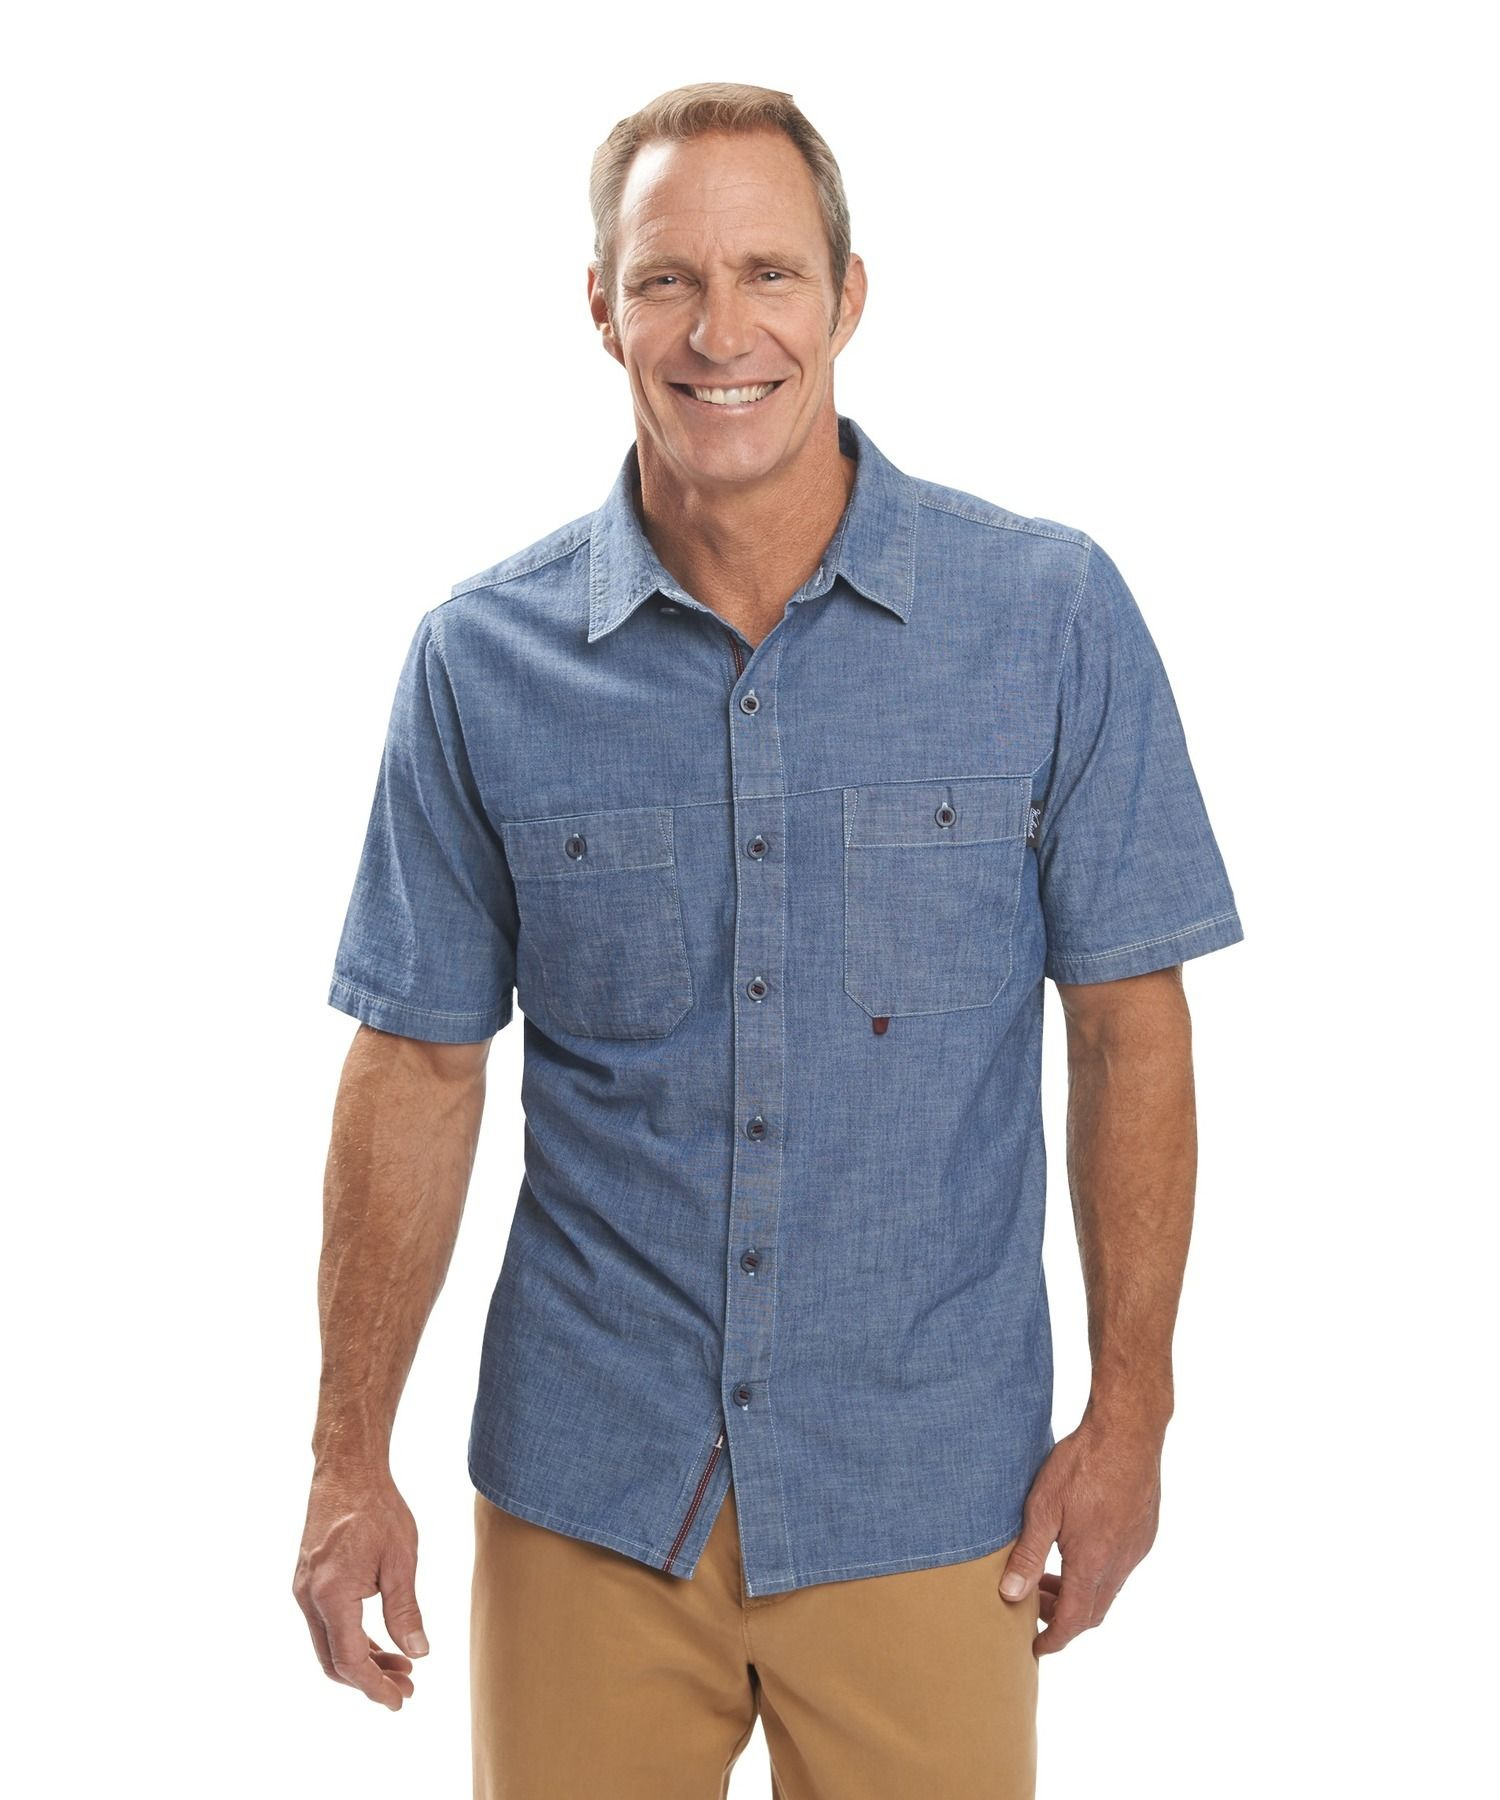 Men's Route 99 Short Sleeve Shirt by WOOLRICH® The Original Outdoor Clothing Company